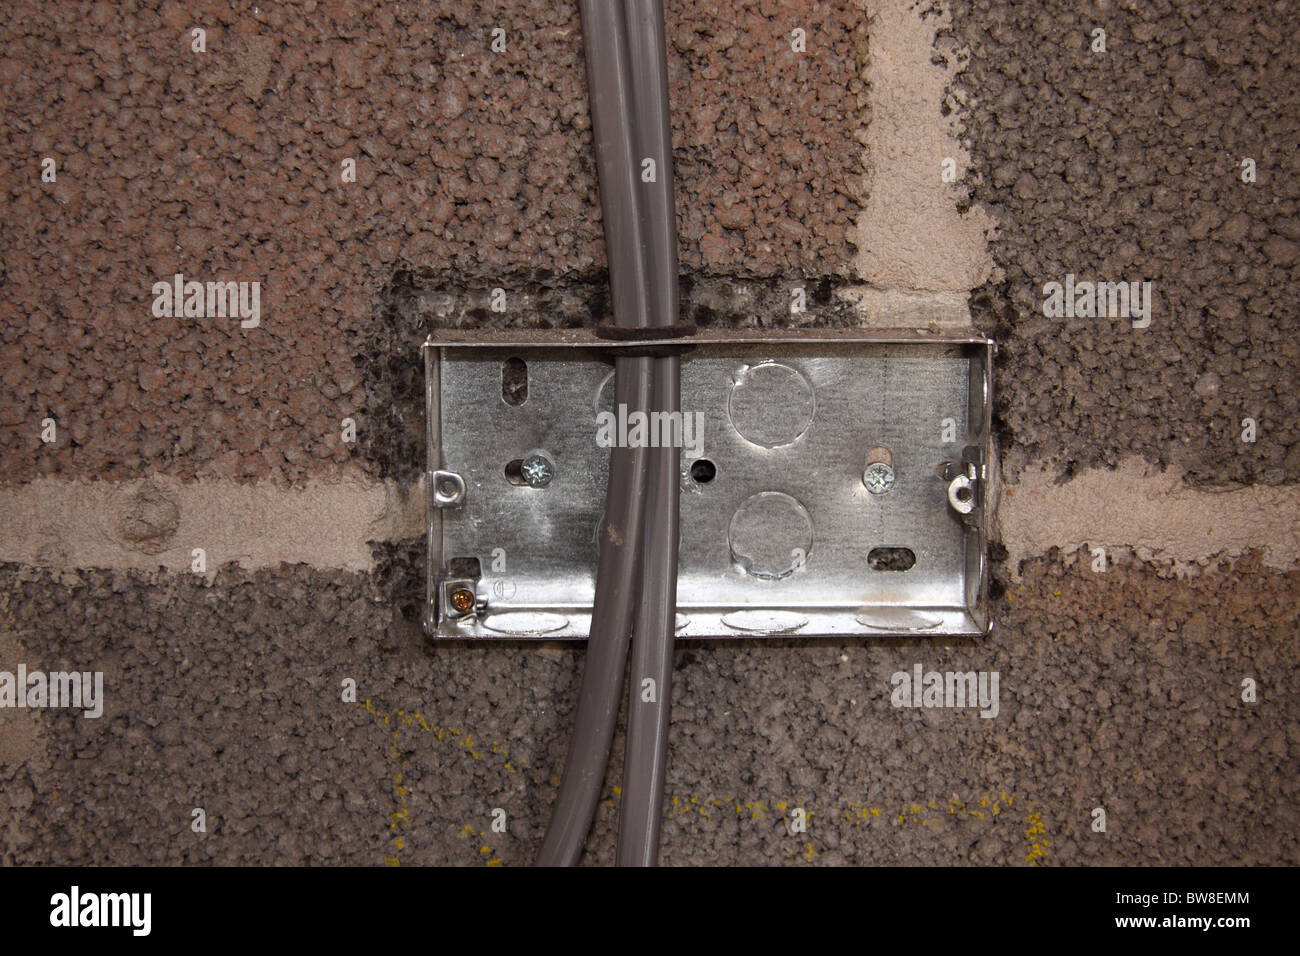 How To Install A Wall Light Junction Box : Electrical Light switch box during installation on a block work wall Stock Photo, Royalty Free ...